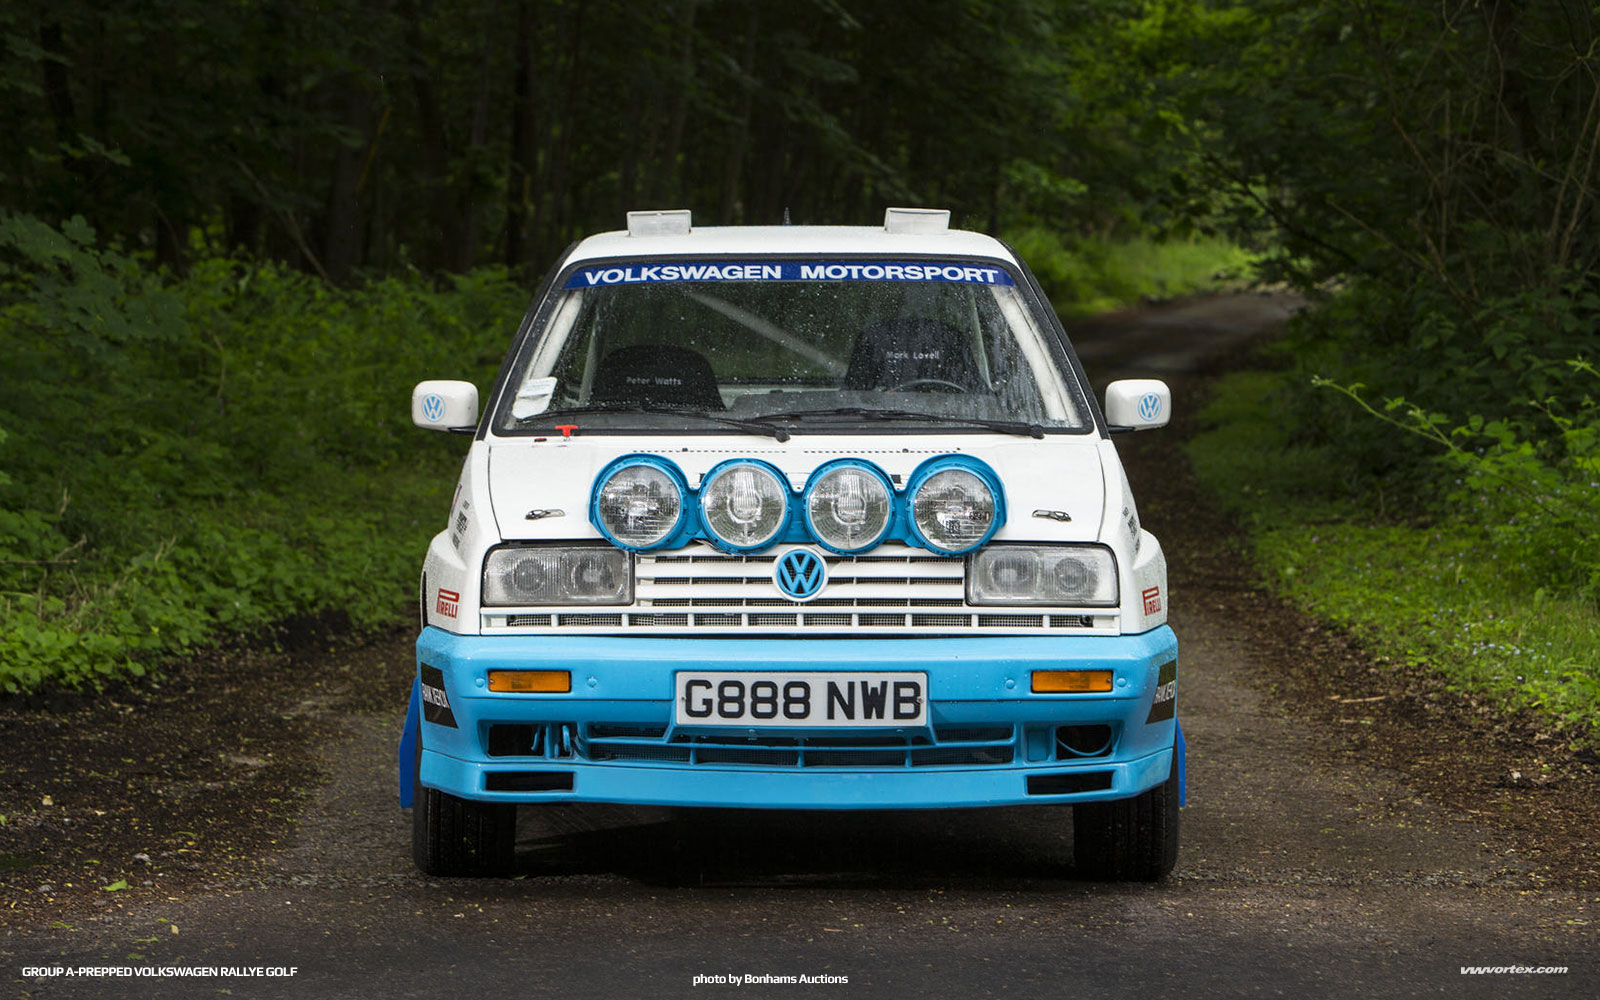 Volkswagen-Rallye-Golf-Group-A-3